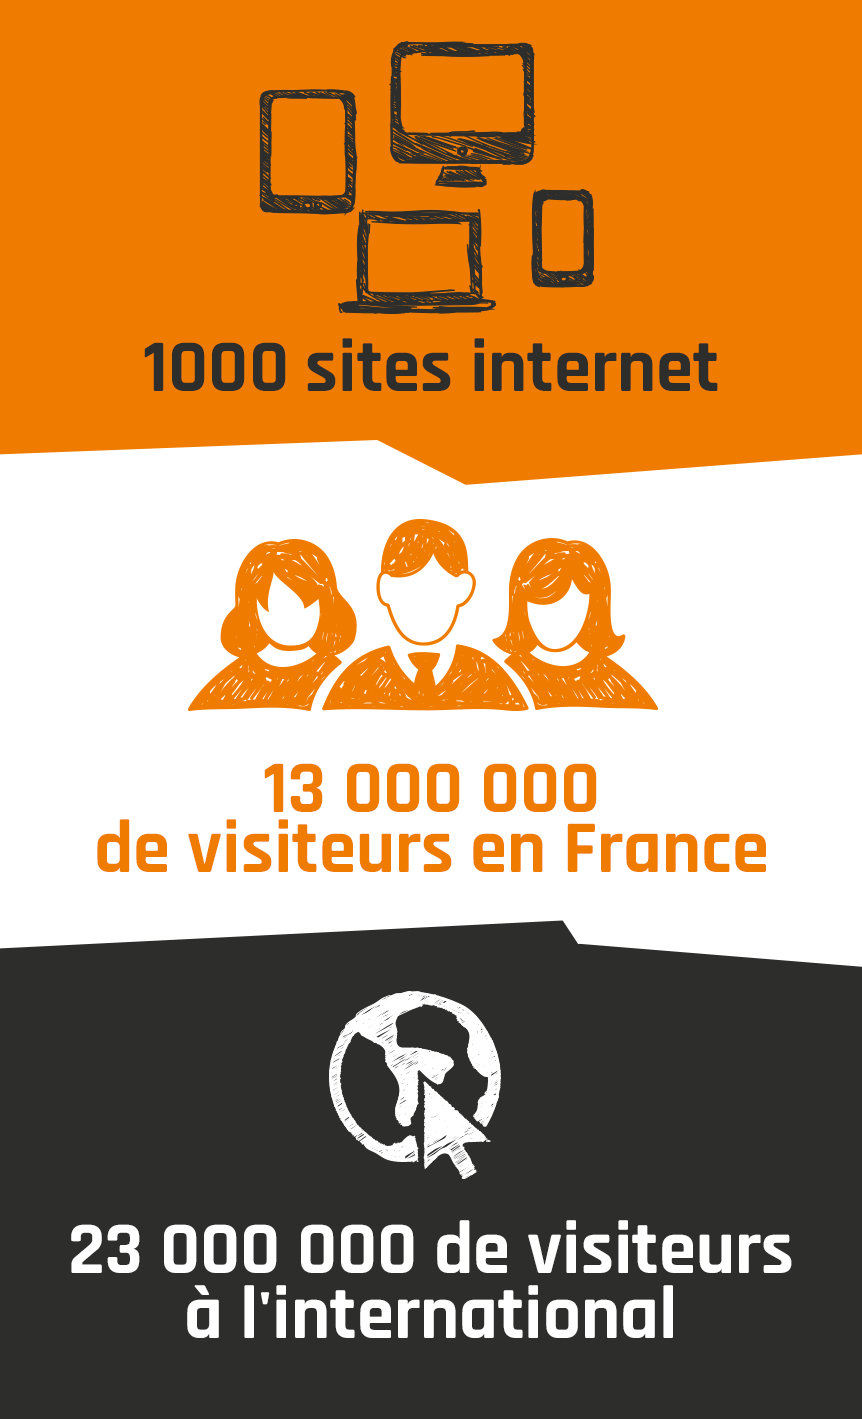 23 000 000 de visiteurs à l'international